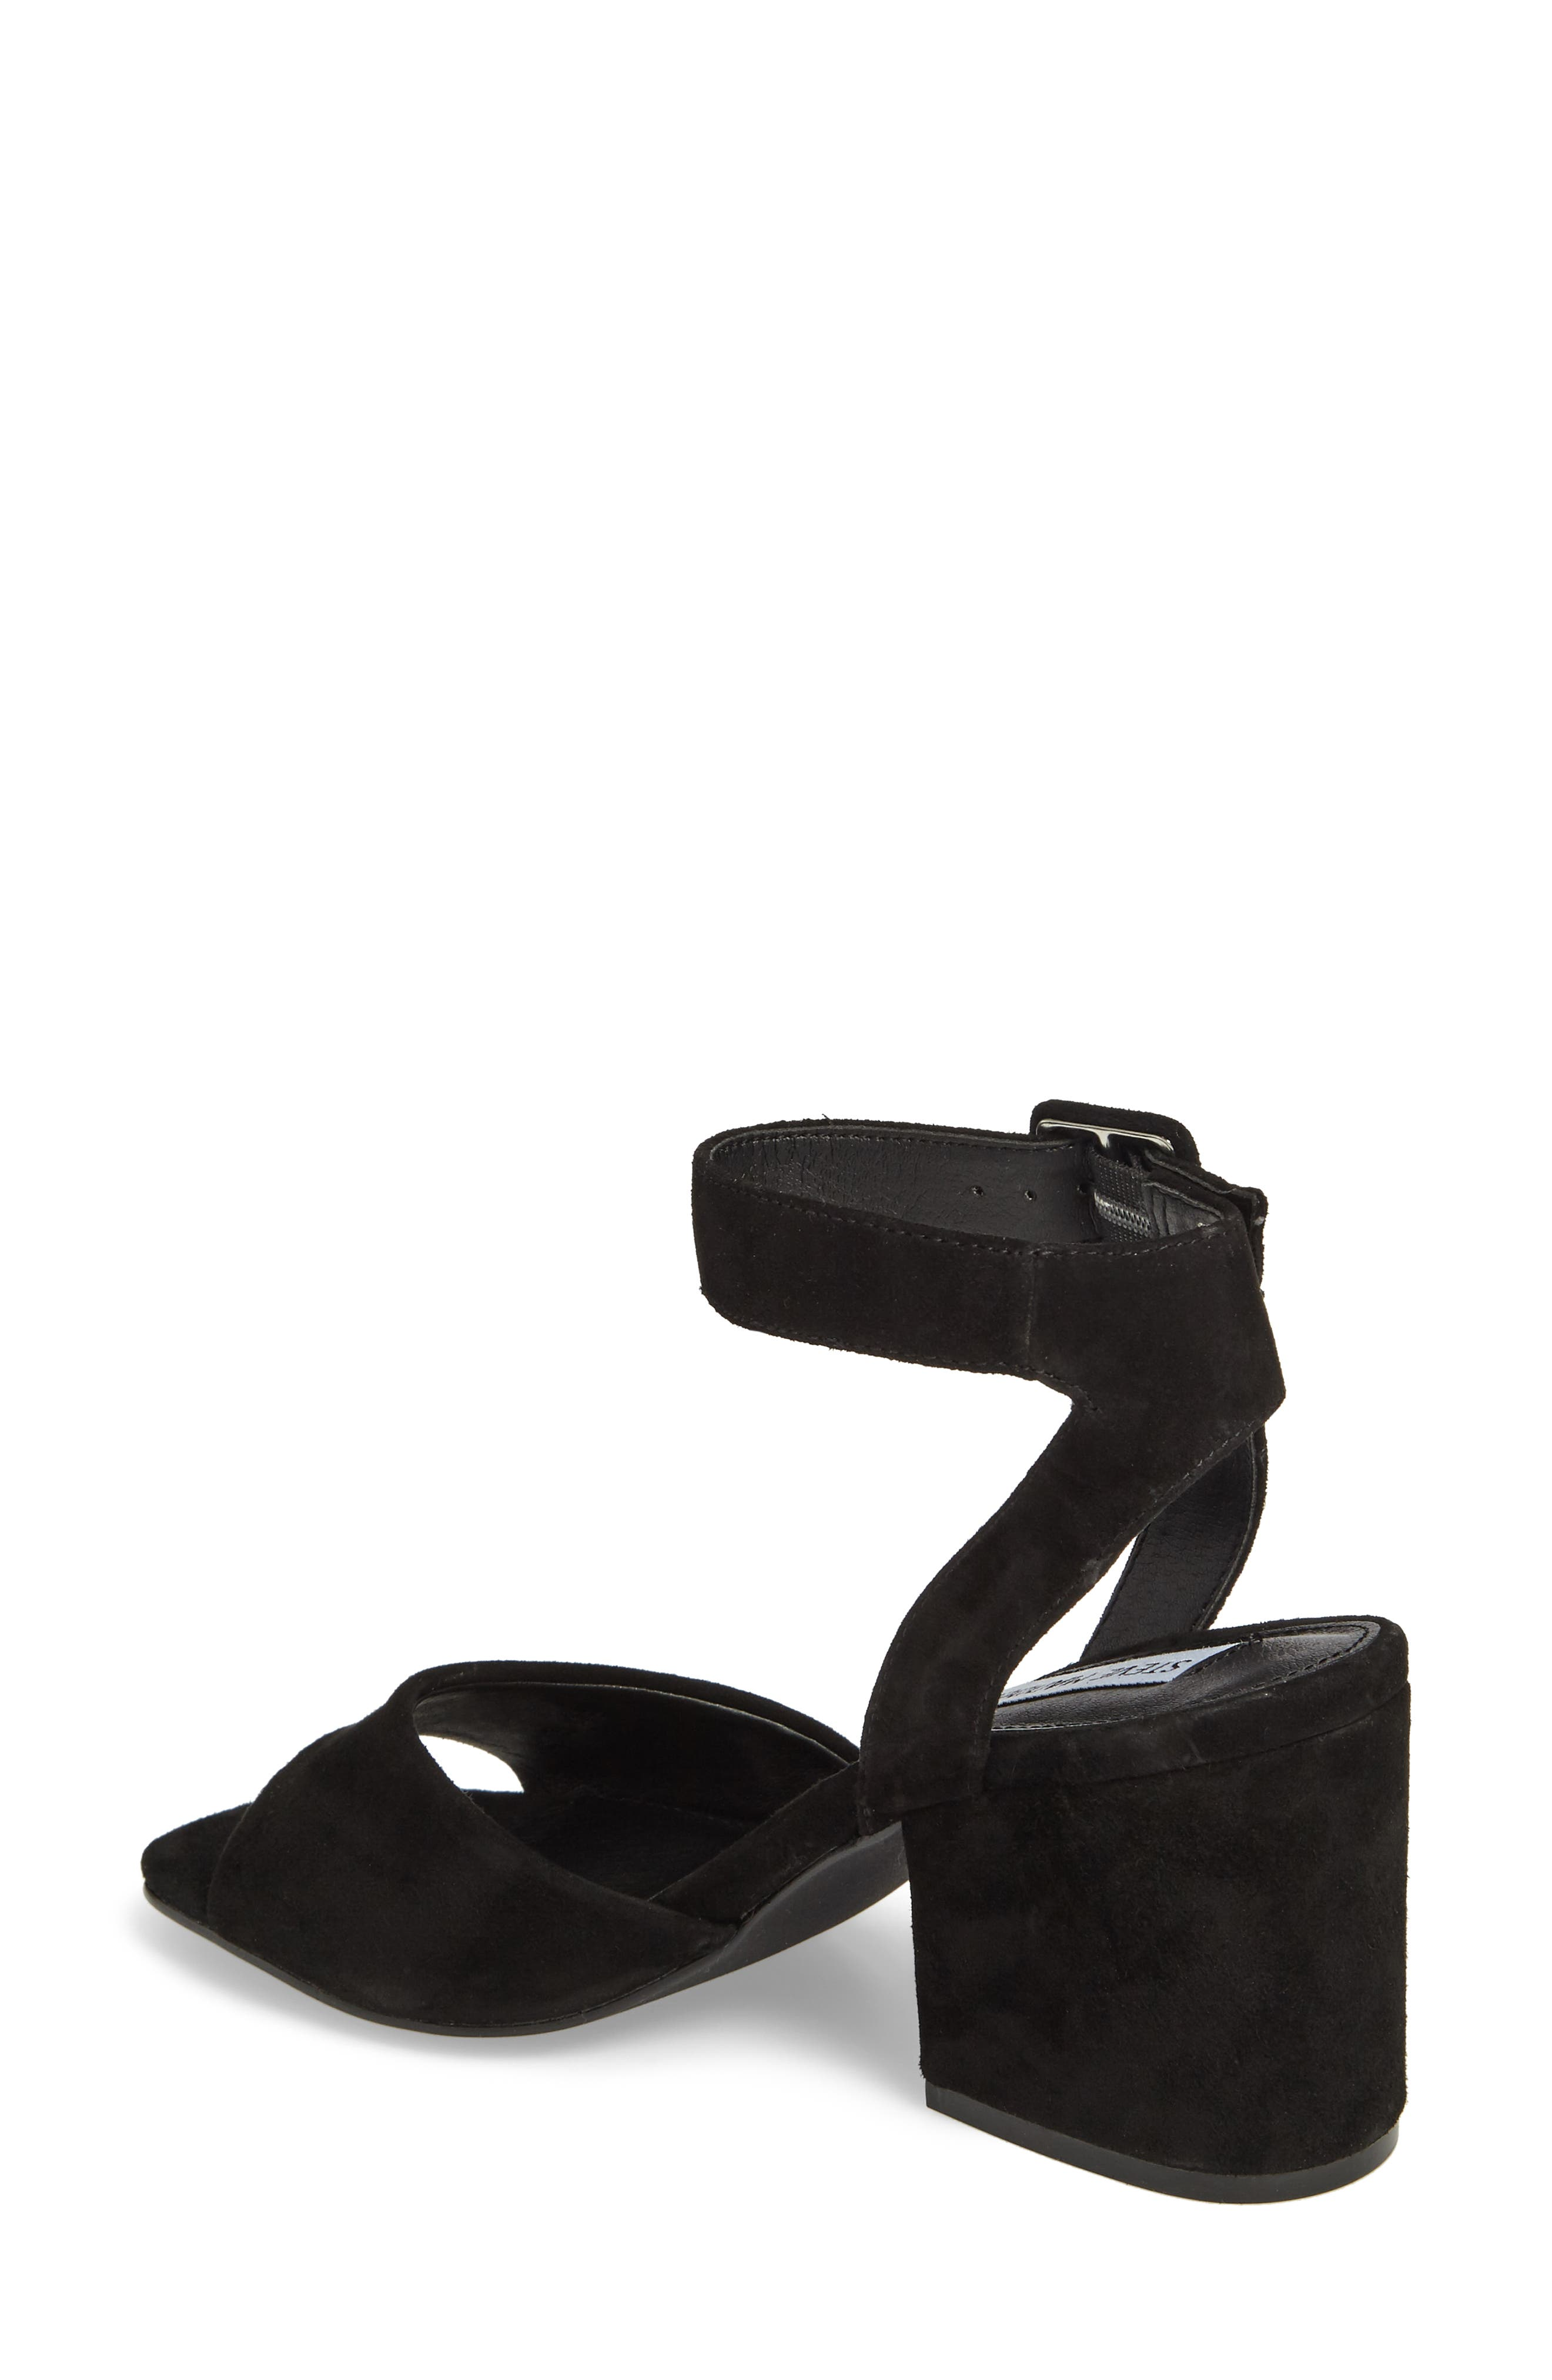 Debbie Sandal,                             Alternate thumbnail 2, color,                             Black Suede